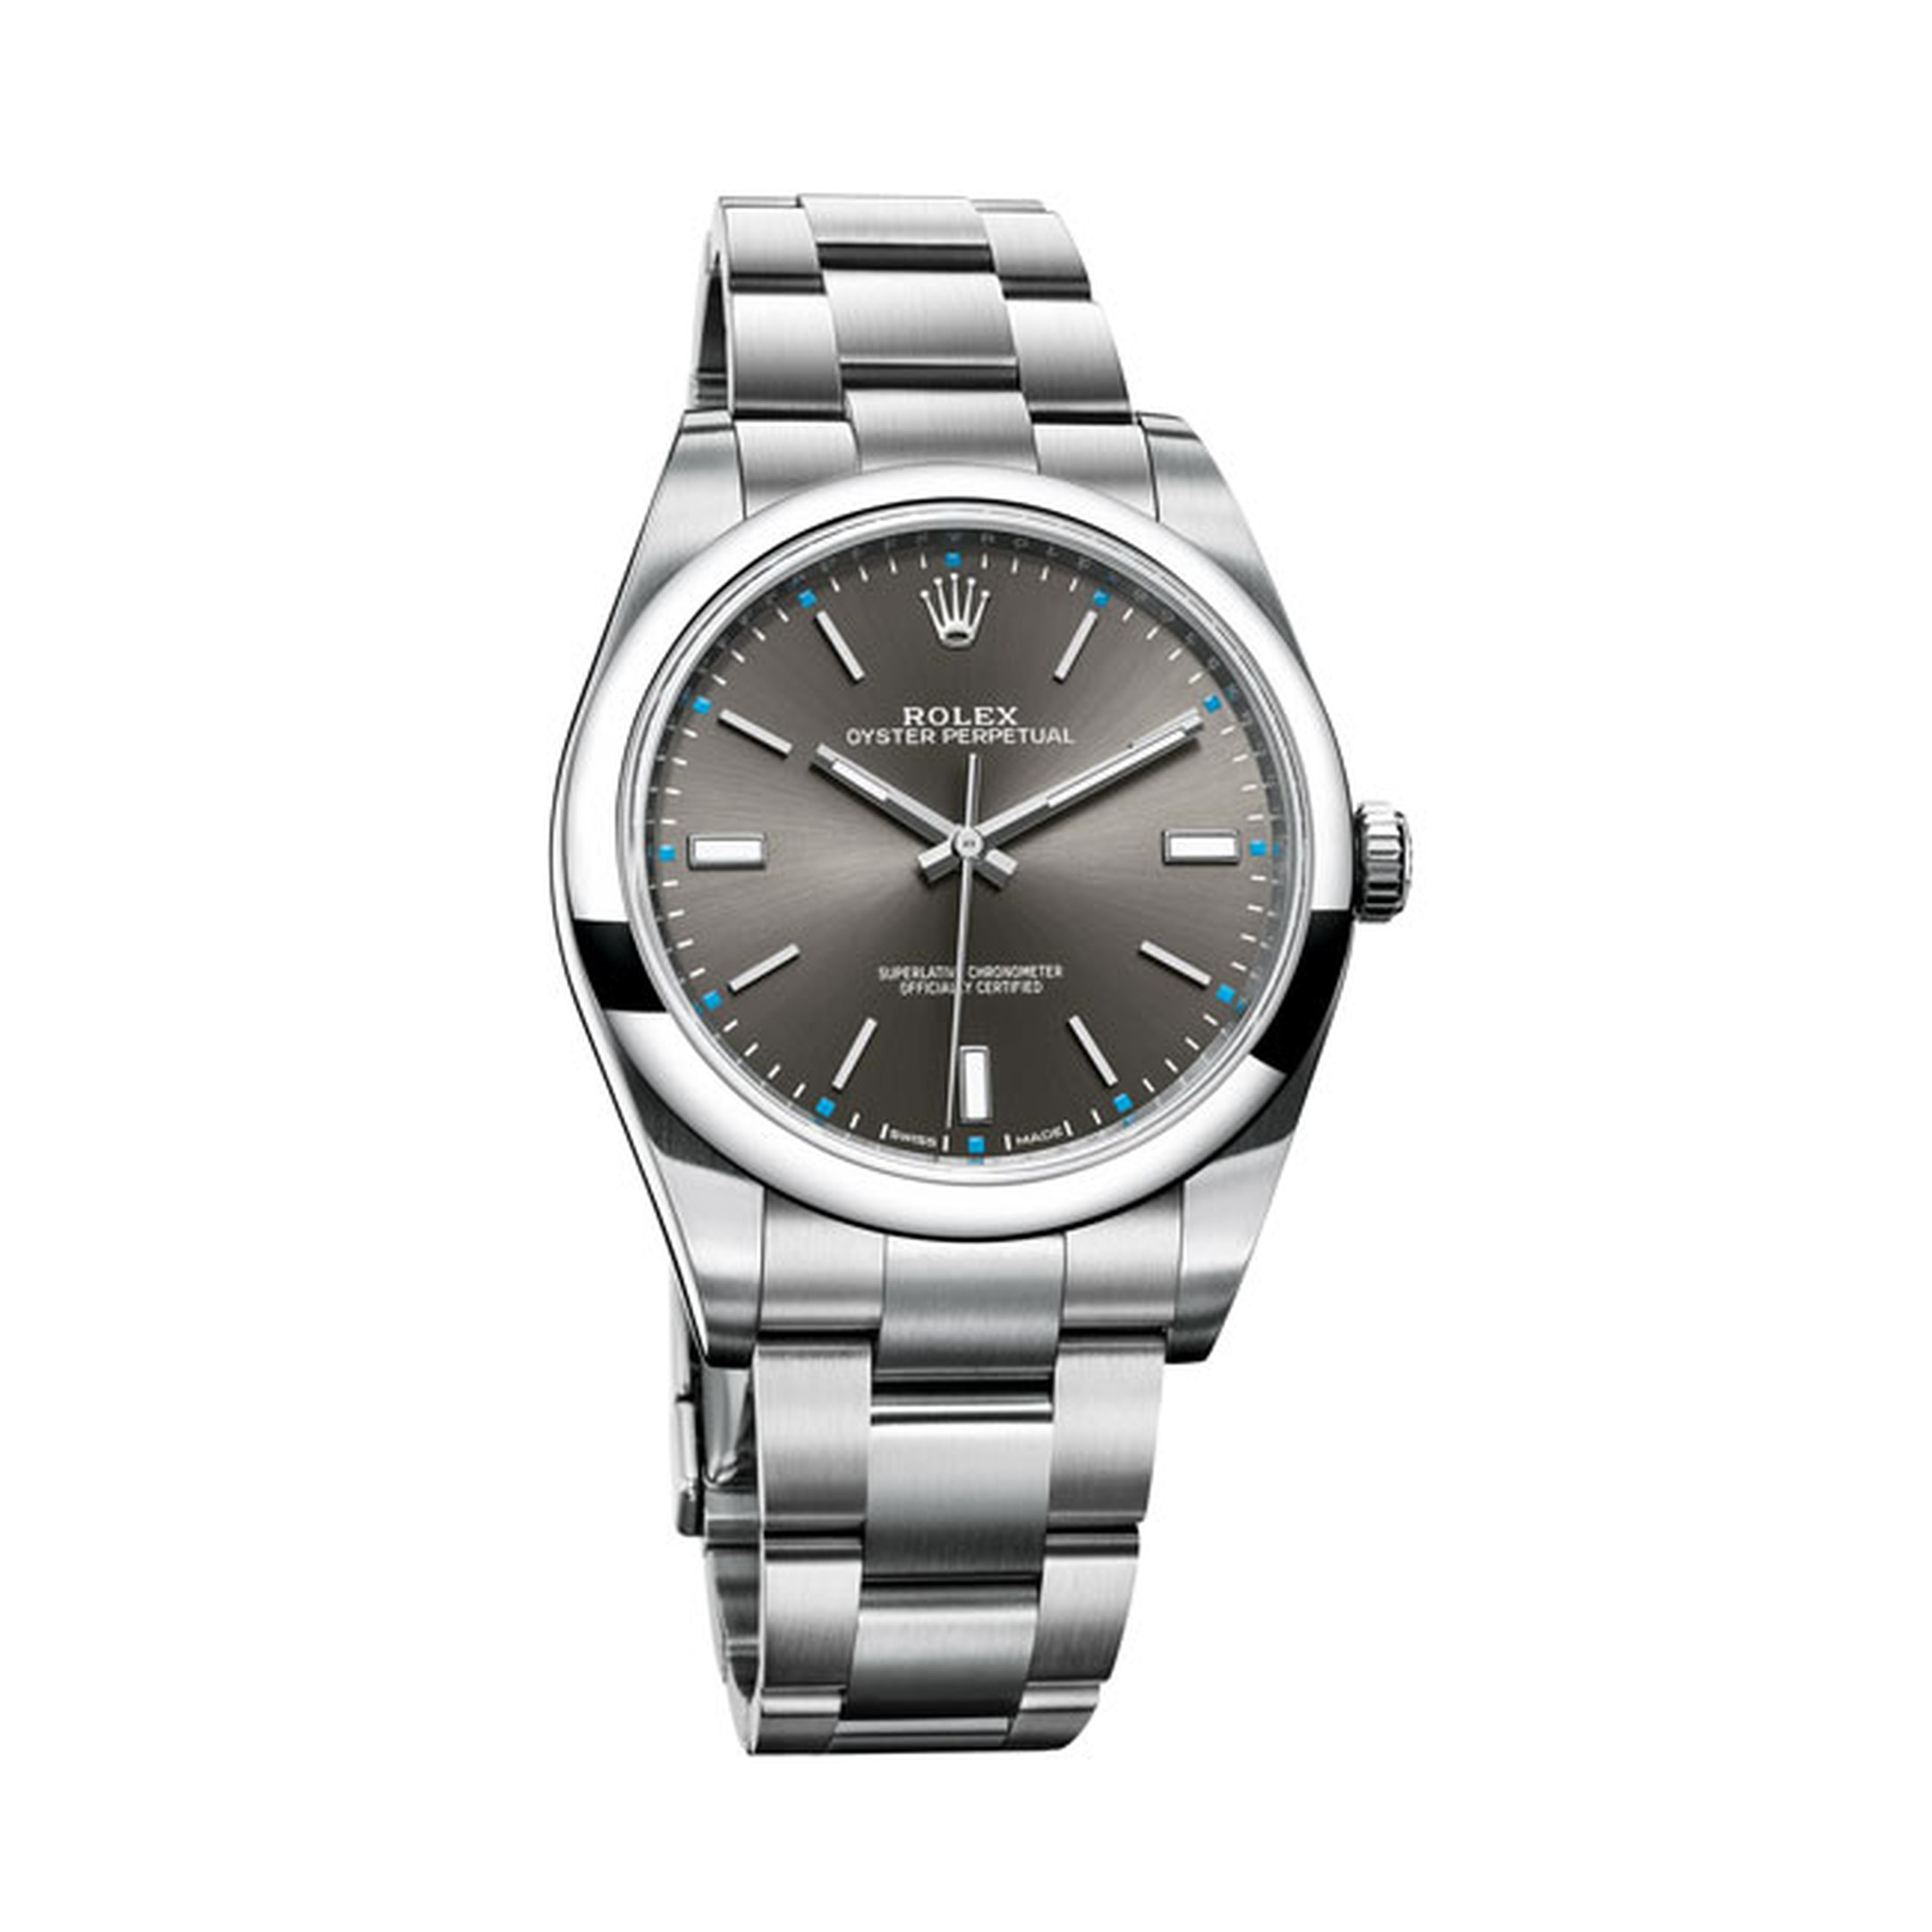 Rolex Oyster Perpetual 39mm_main